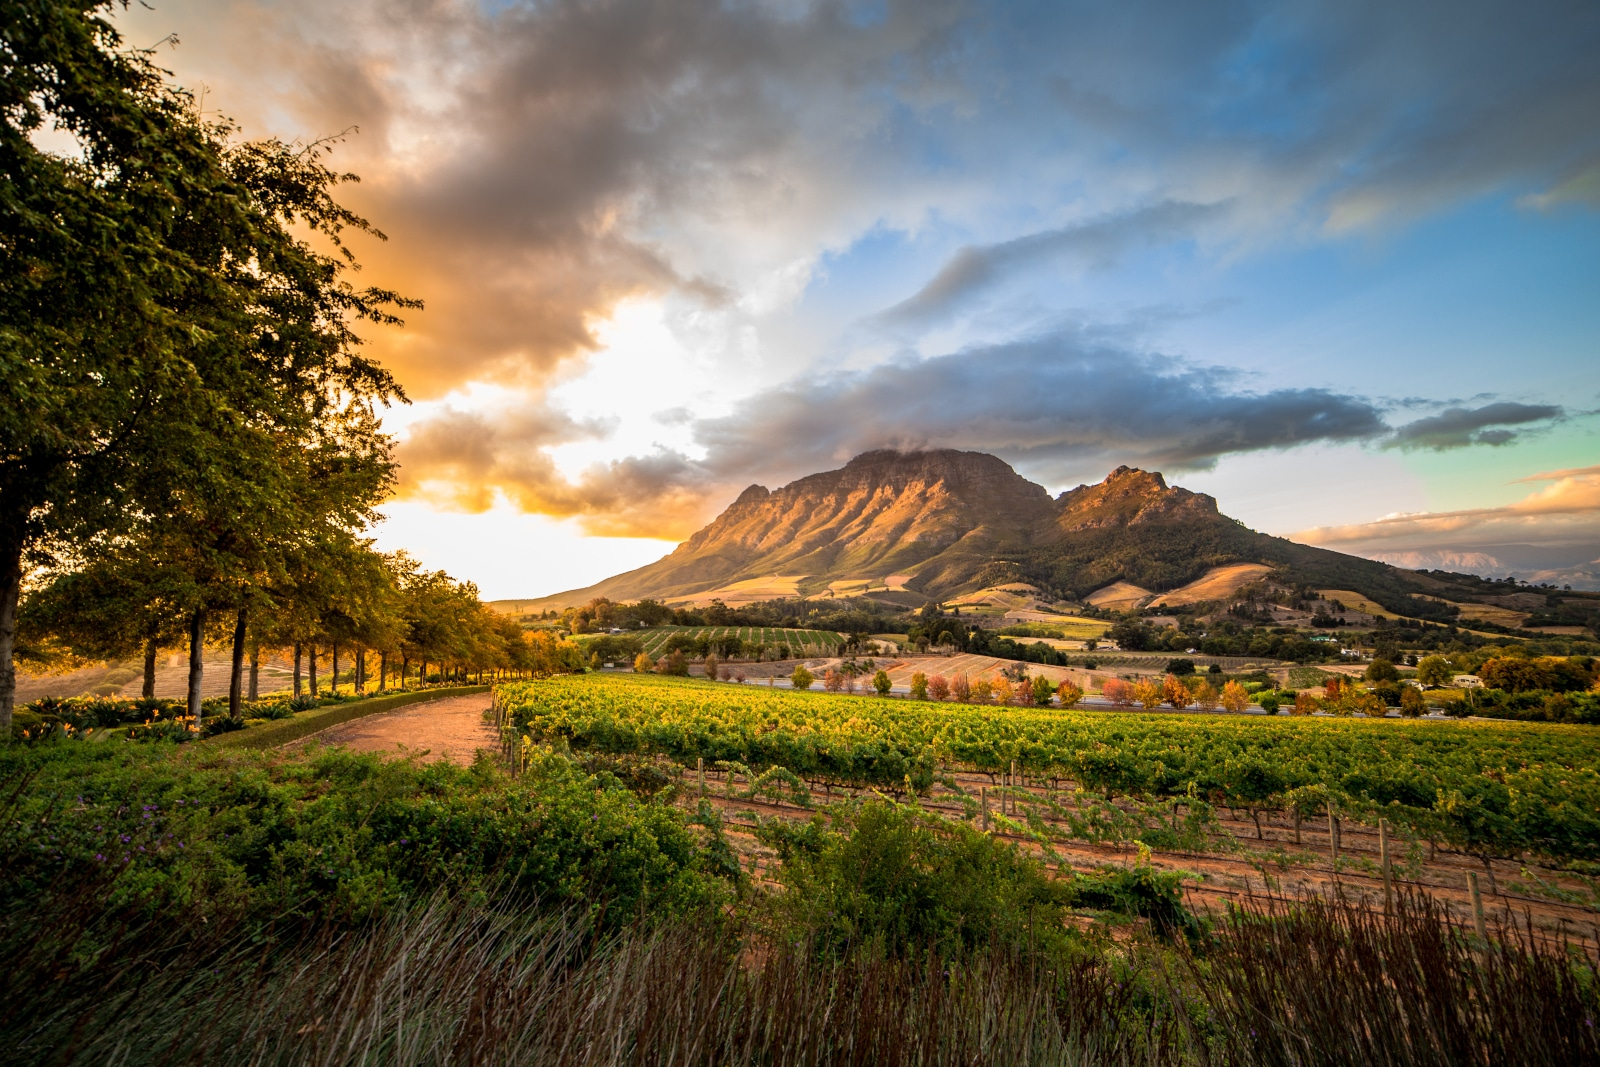 Where Does Pinotage Come From